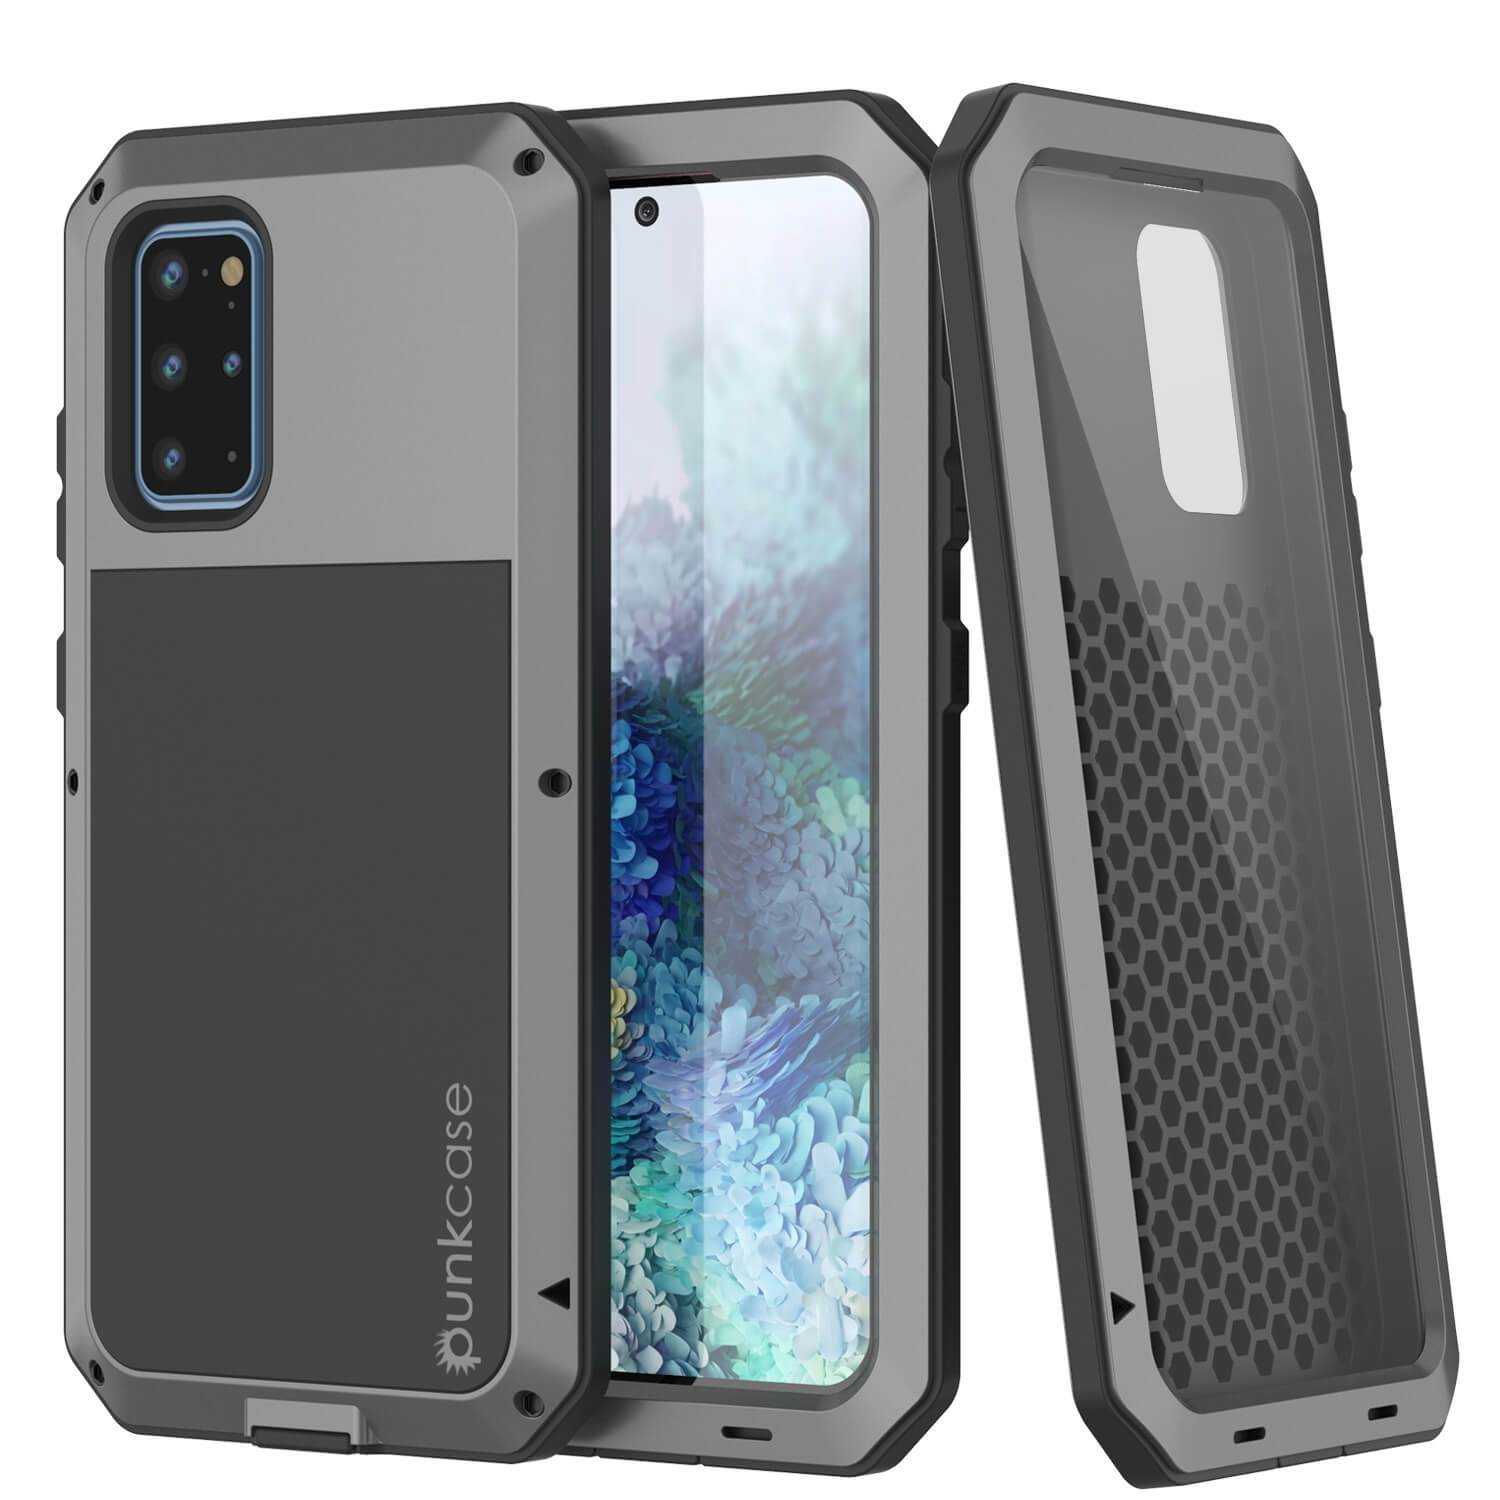 Galaxy s20+ Plus Metal Case, Heavy Duty Military Grade Rugged Armor Cover [Silver]